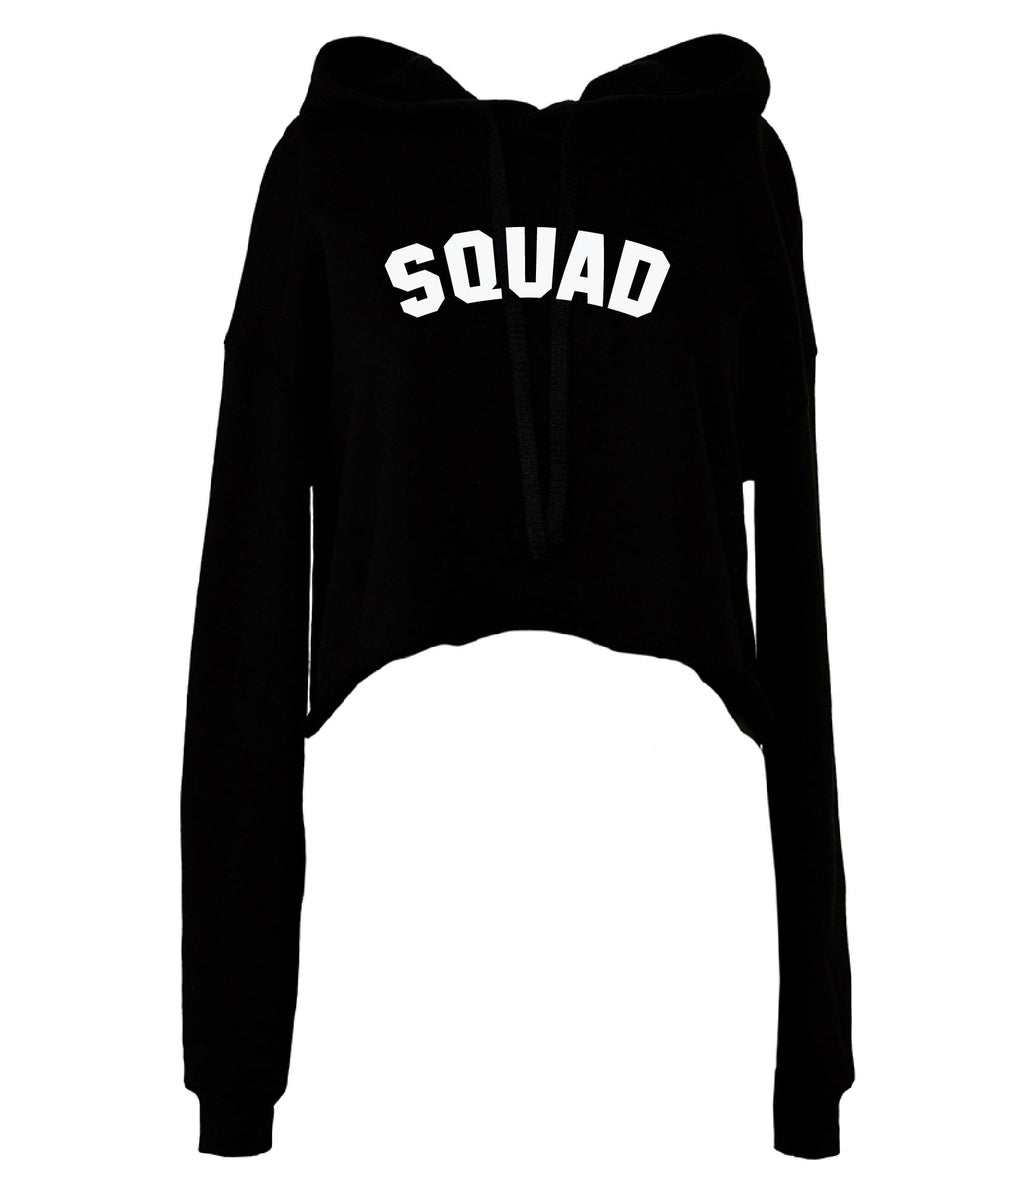 SQUAD Cropped Hoodie - Available on a Black hoodie